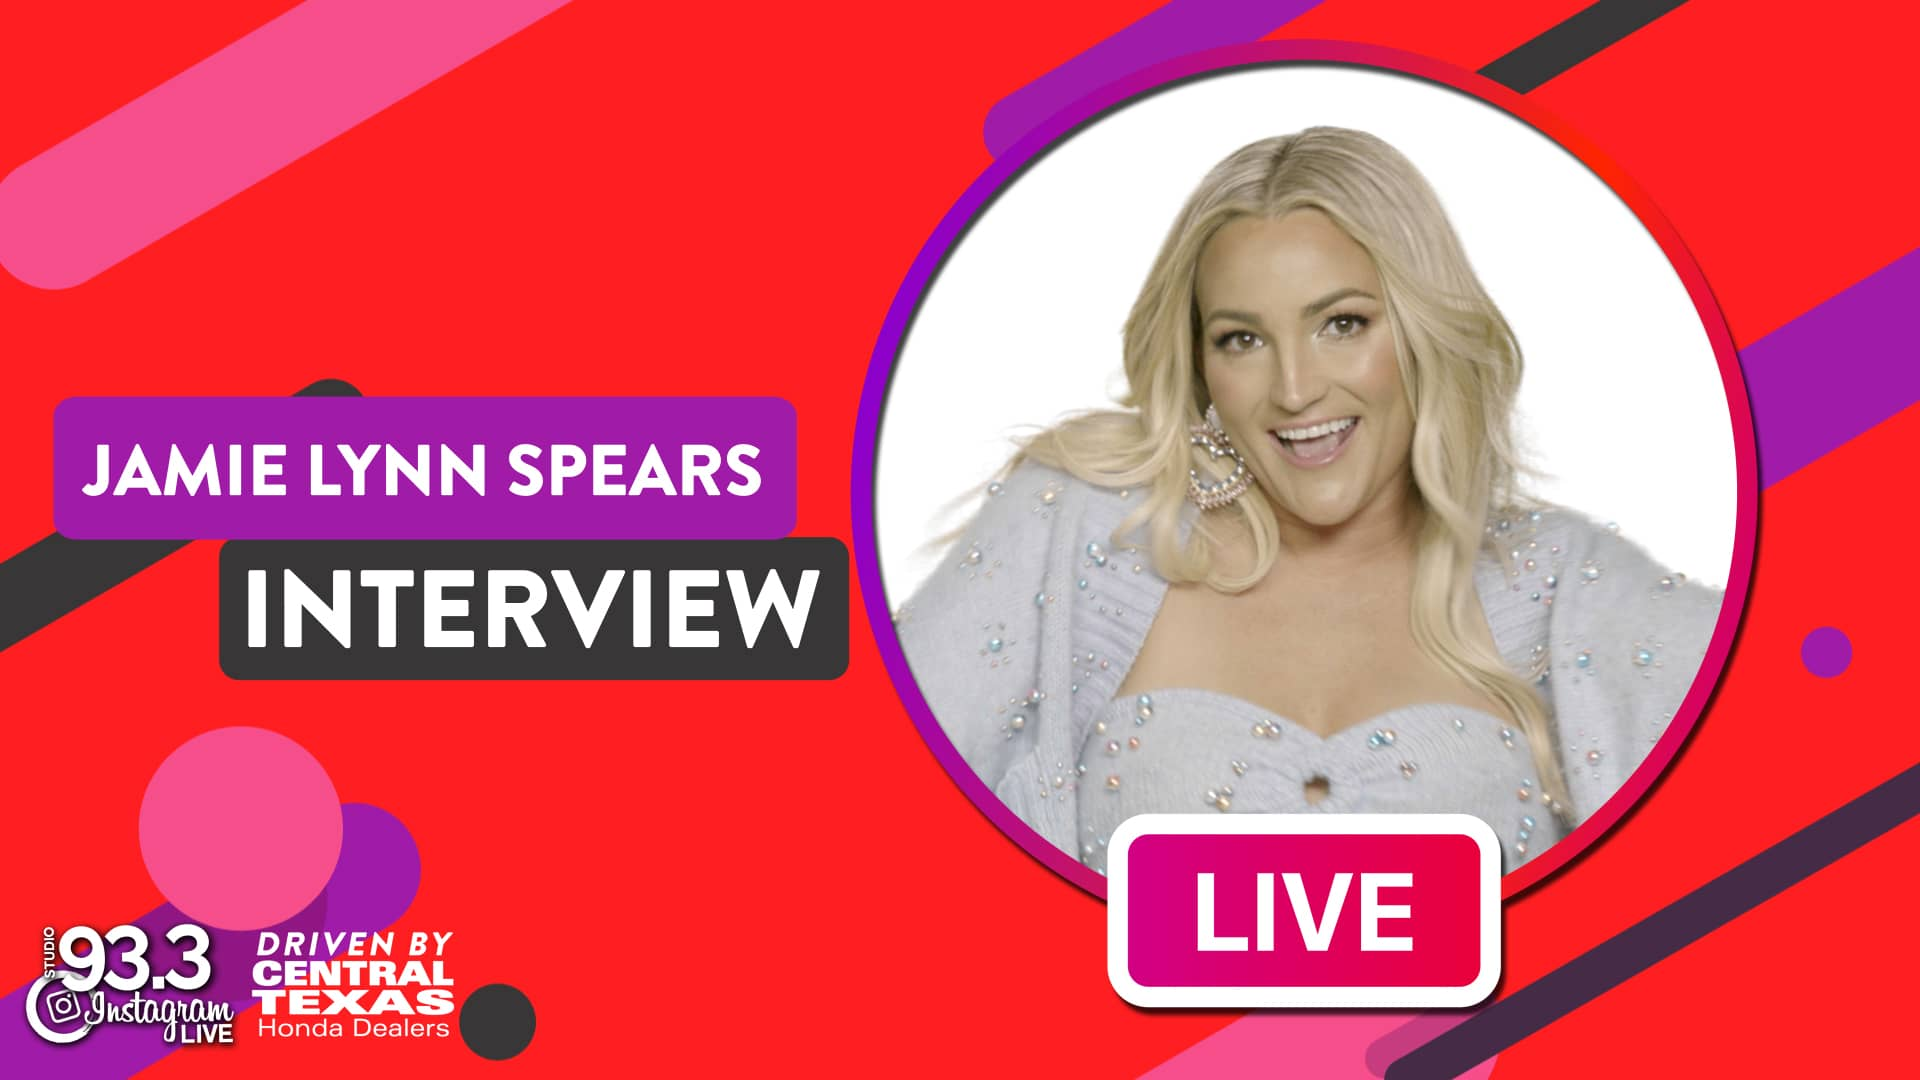 Lucy Live with Jamie Lynn Spears